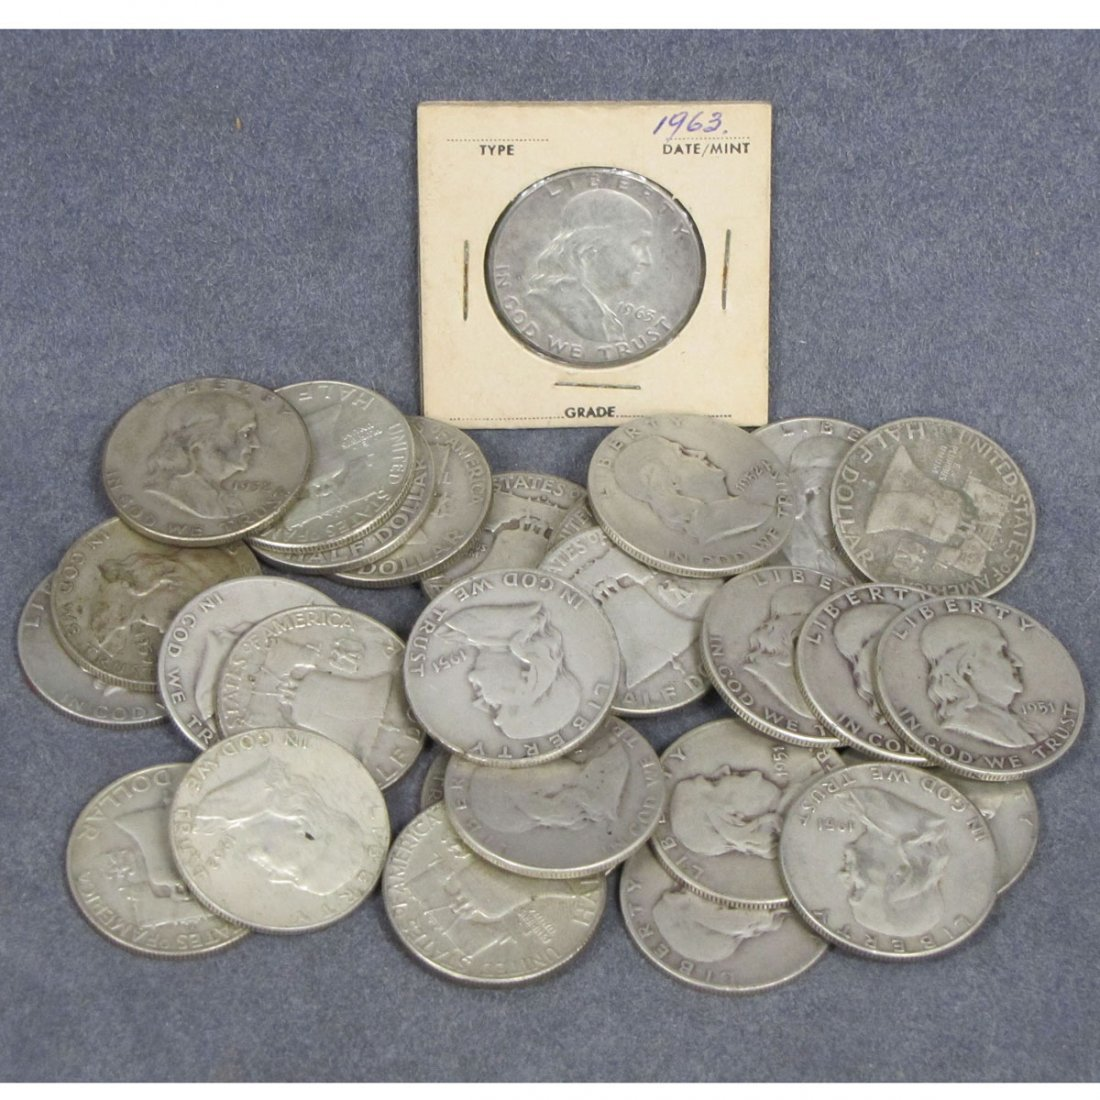 62: LOT (32) ASSORTED FRANKLIN SILVER HALF DOLLAR COIN